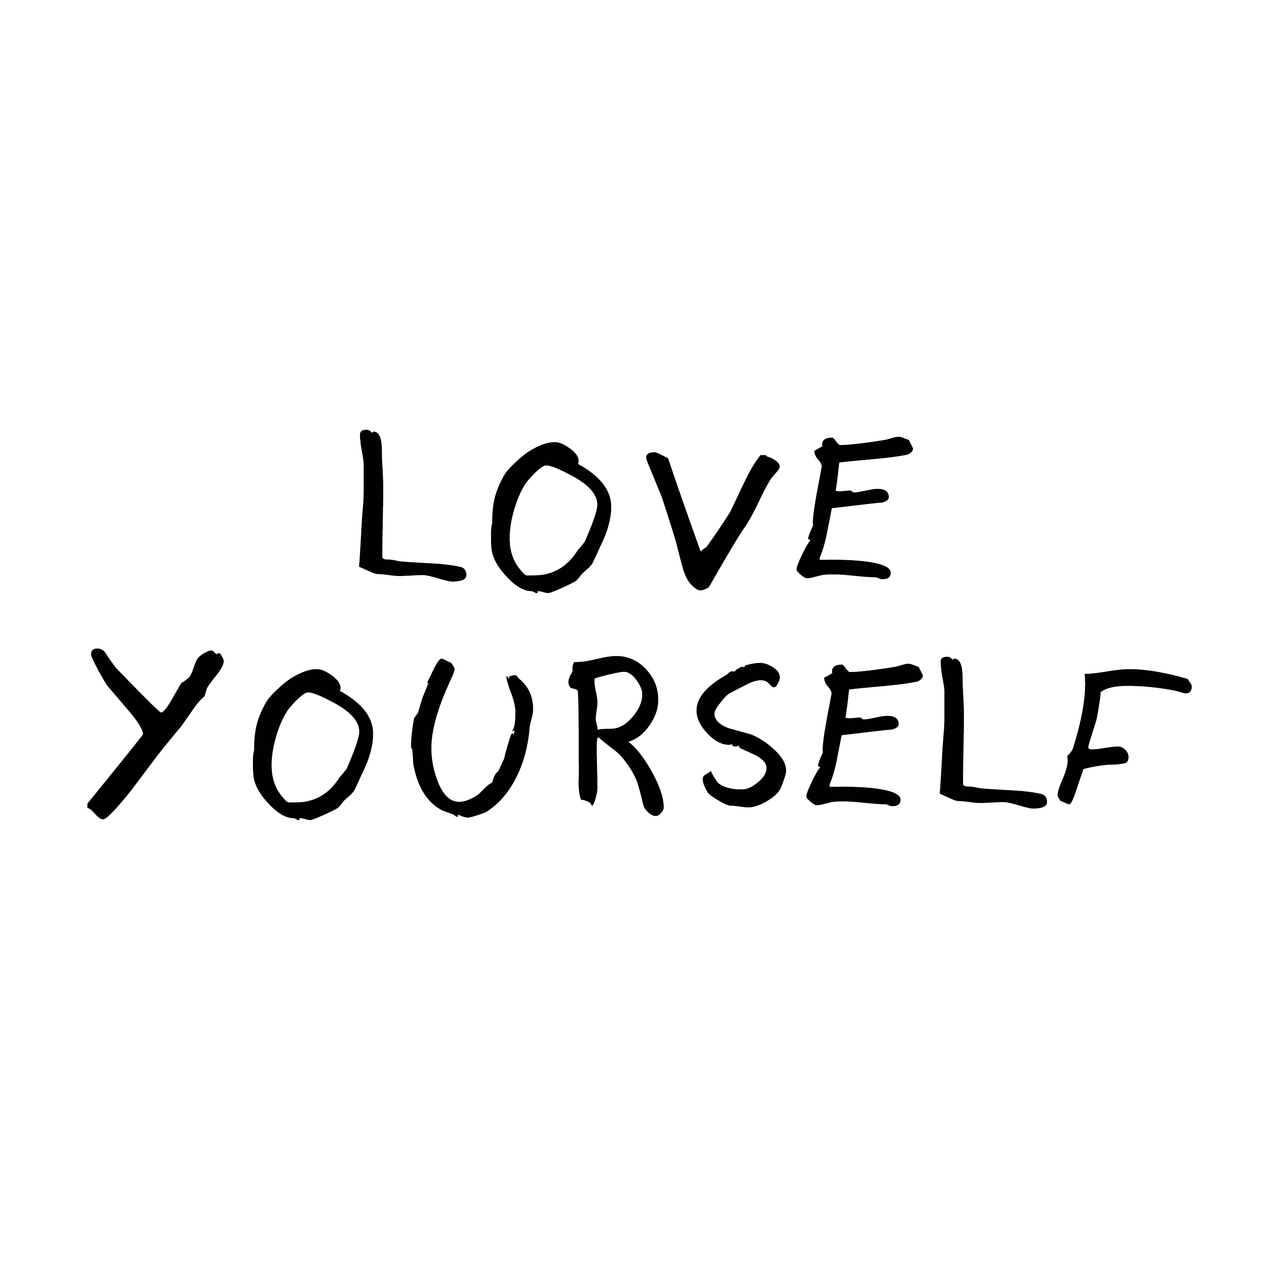 love and yourself image